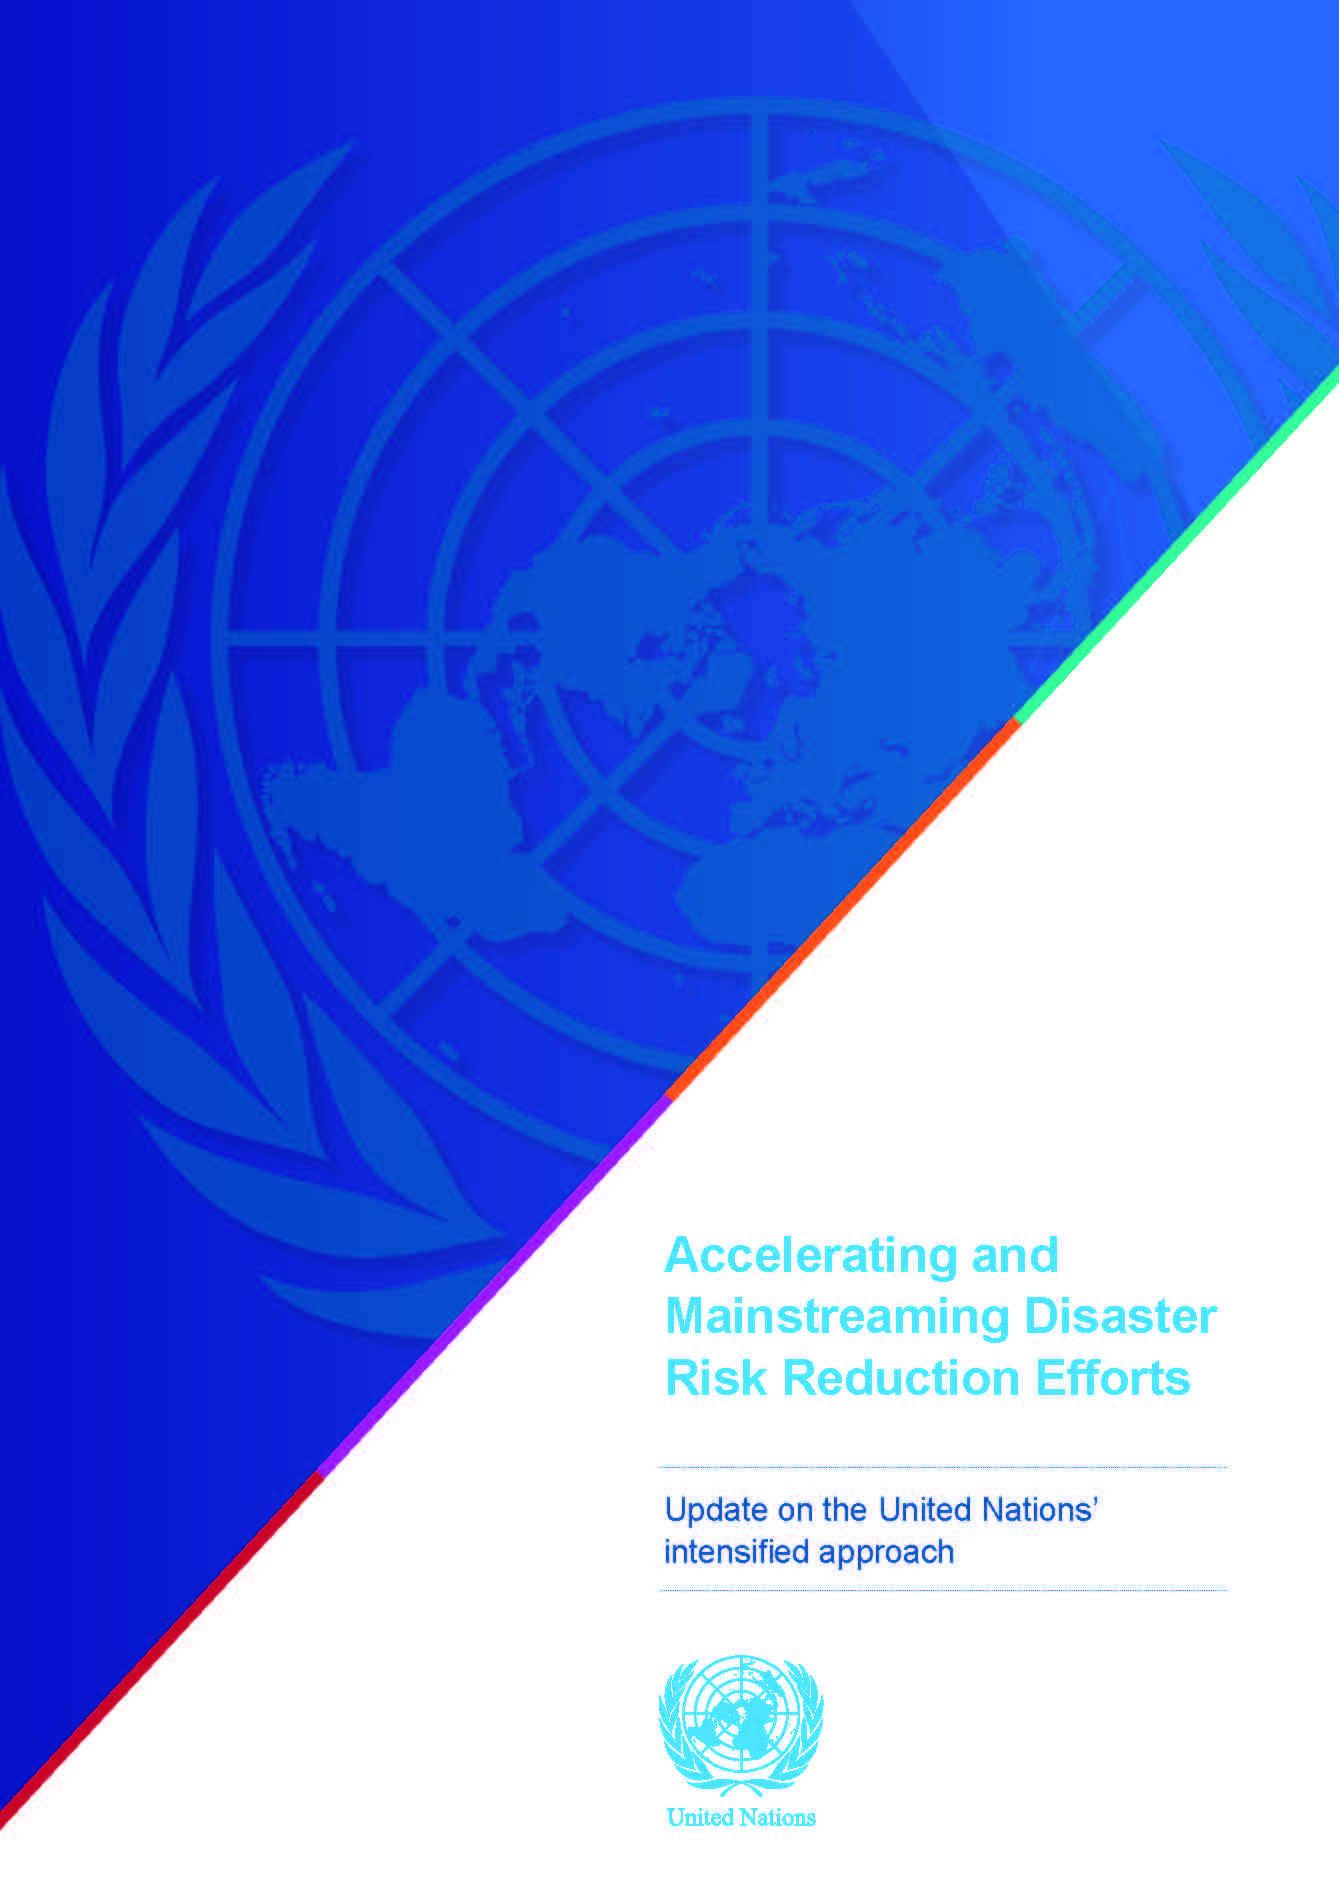 Accelerating and mainstreaming disaster risk reduction efforts: update on the United Nations' intensified approach